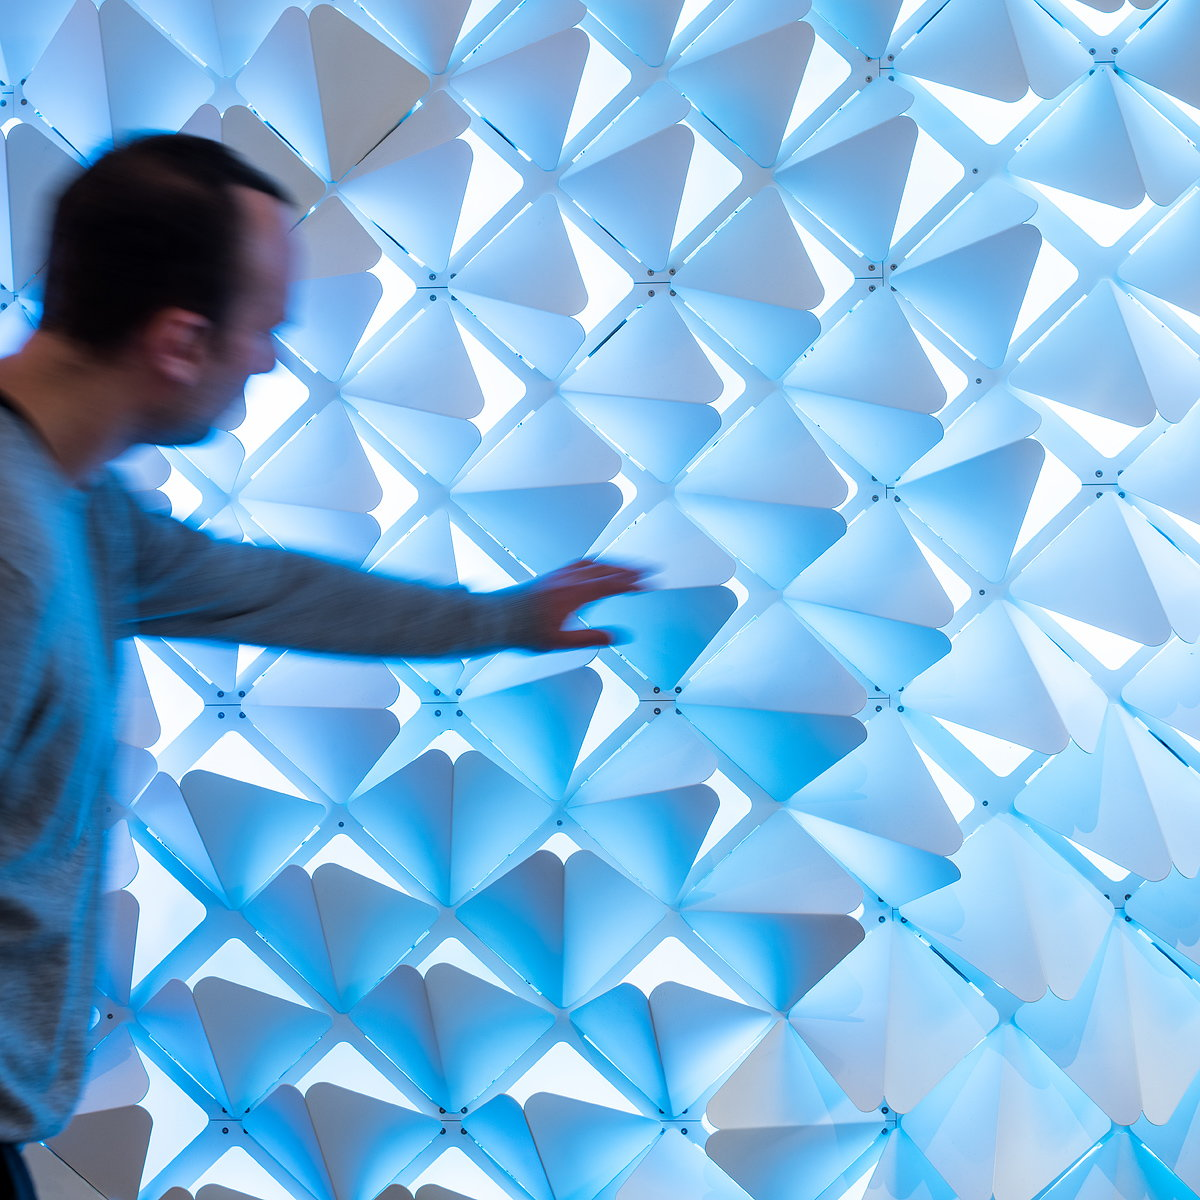 SOFTlab Creates Interactive Wall Installation for IBM Watson HQ